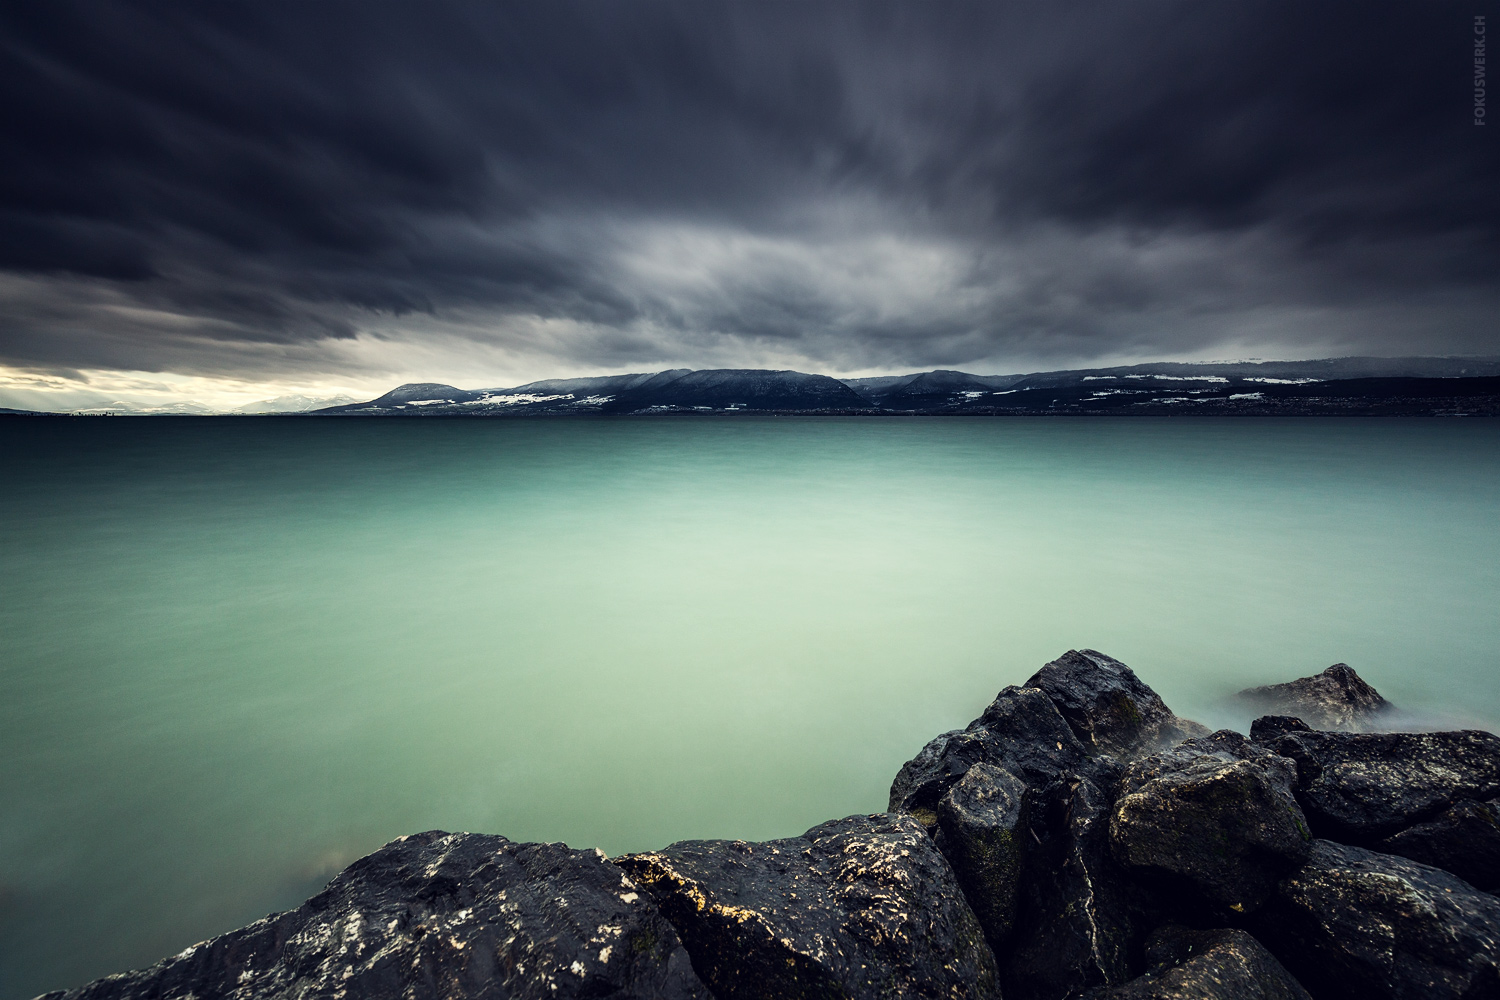 Stormy winter day in Portalban at the lake Neuchâtel, Switzerland